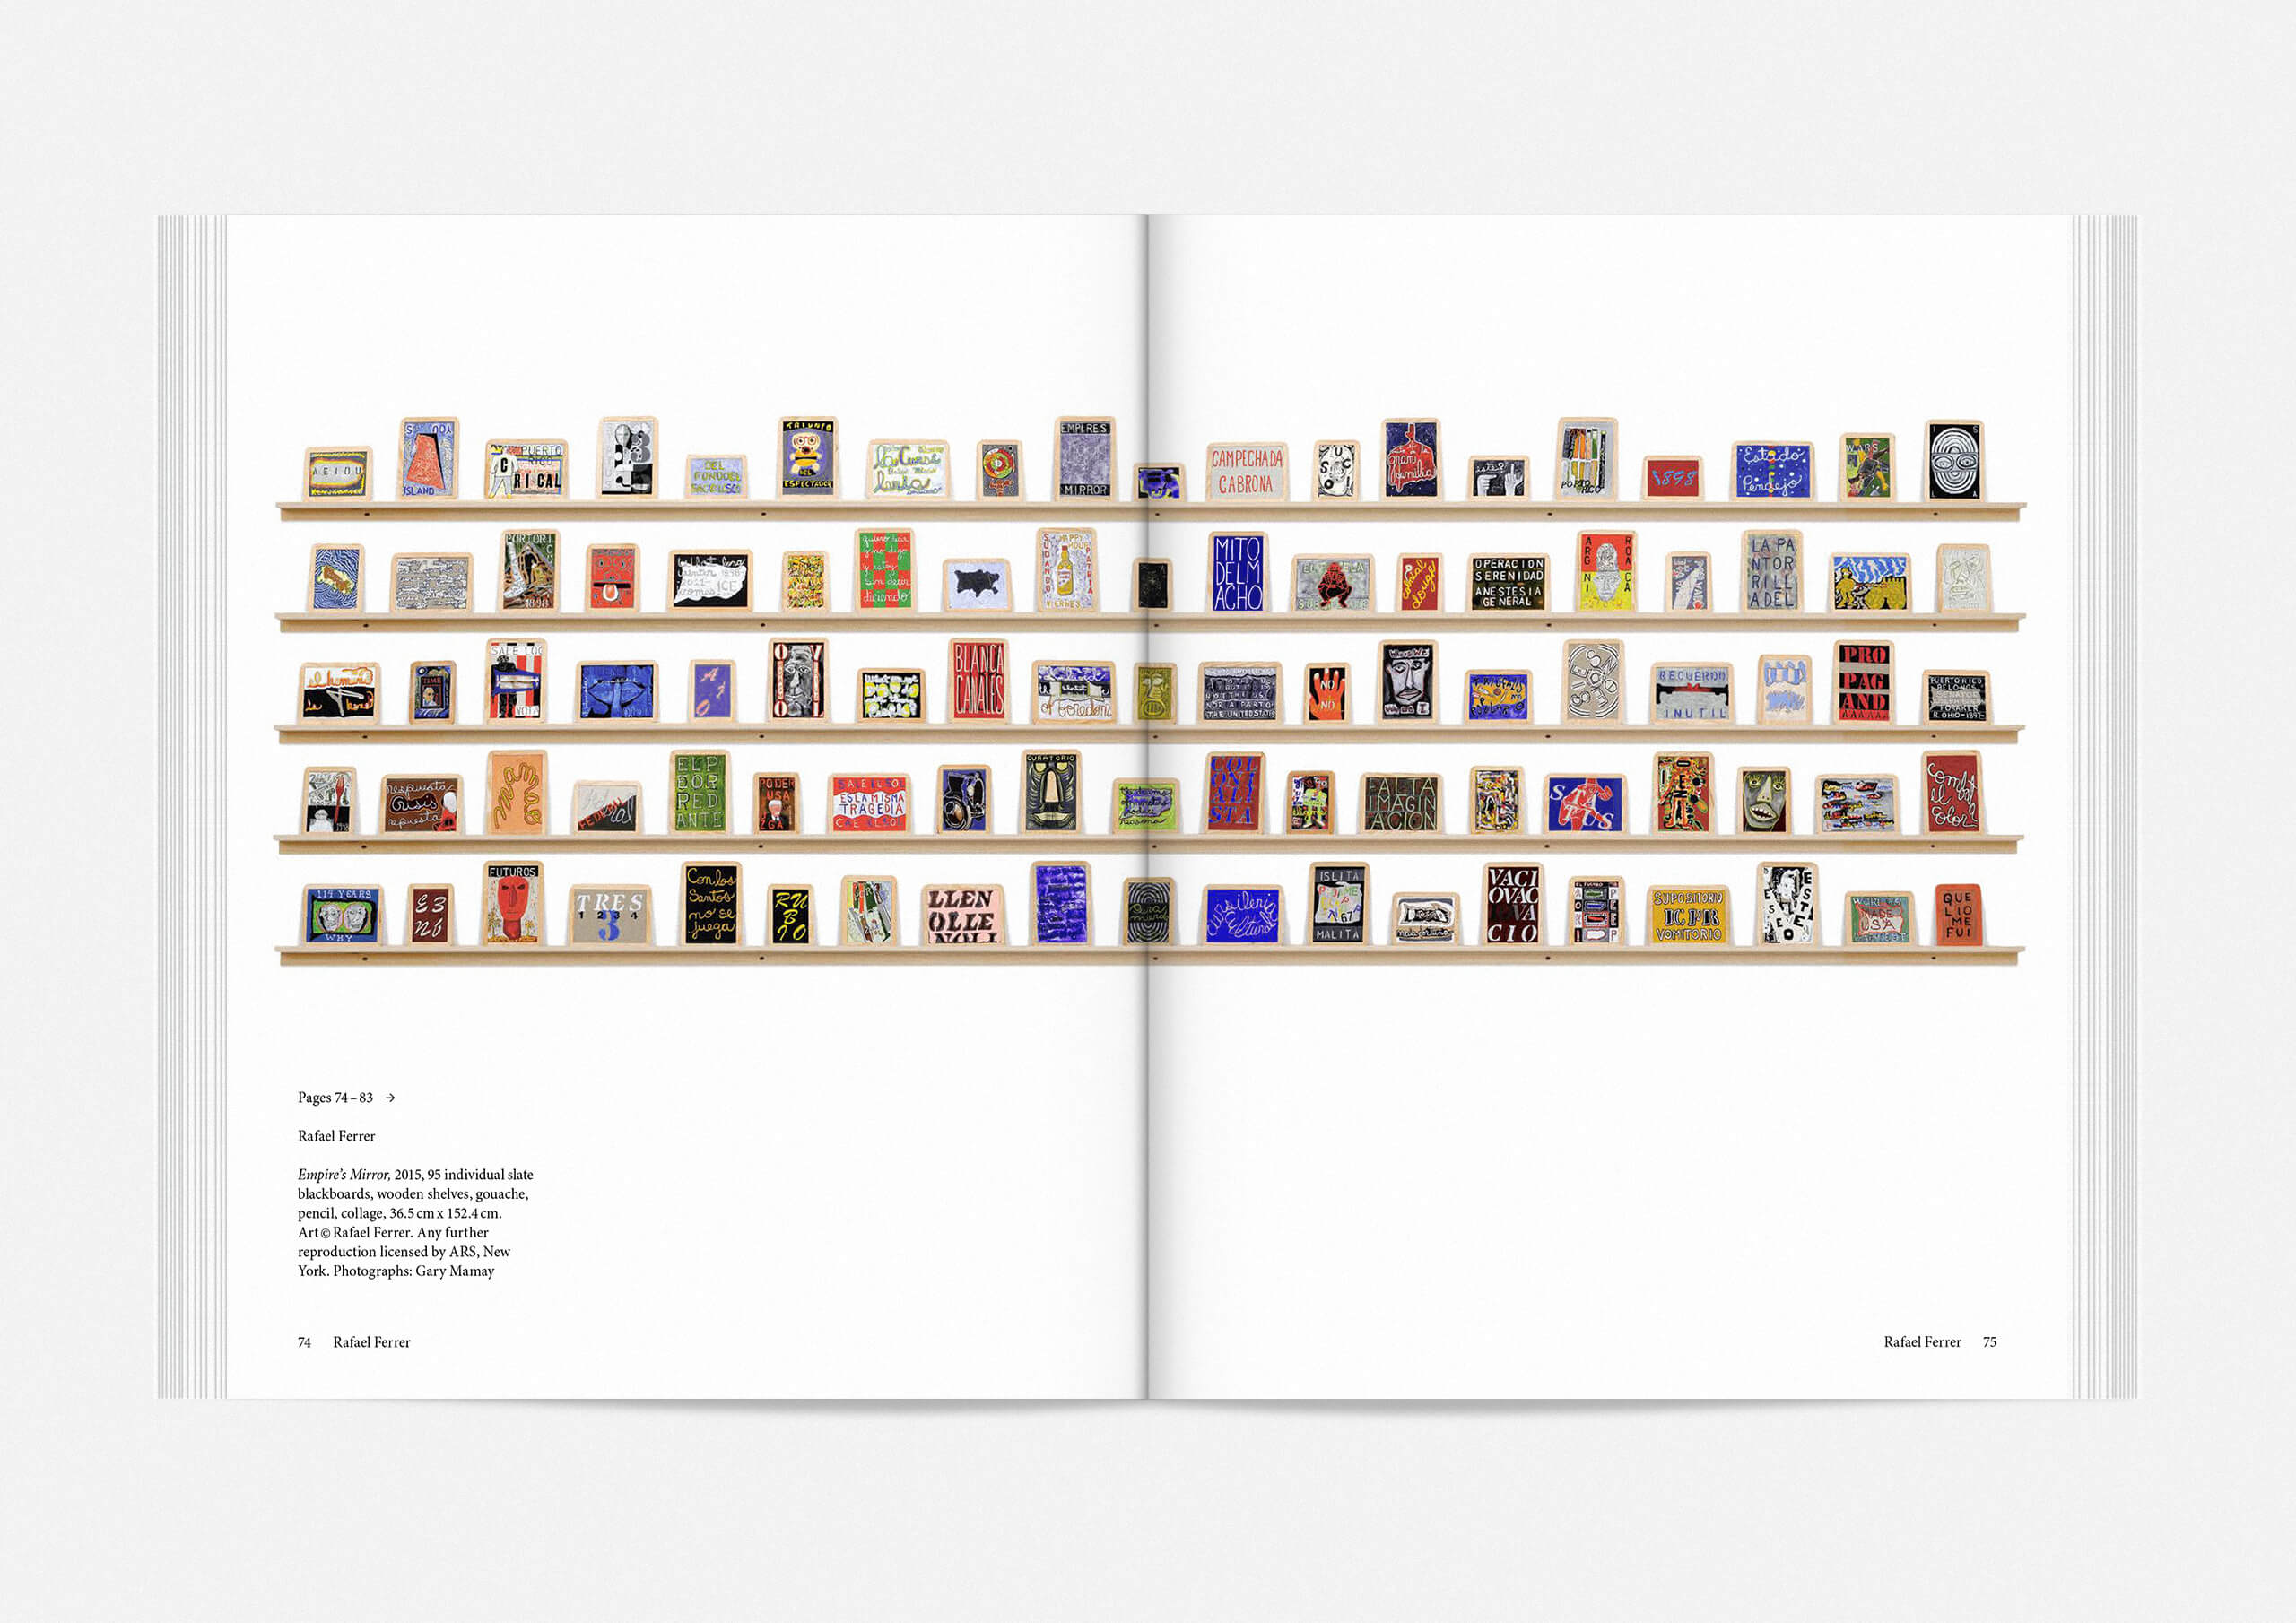 http://neuegestaltung.de/media/pages/clients/protocollum-issue-no-05/e41625b009-1597415139/protocollum-5-page-7475-ng.jpg